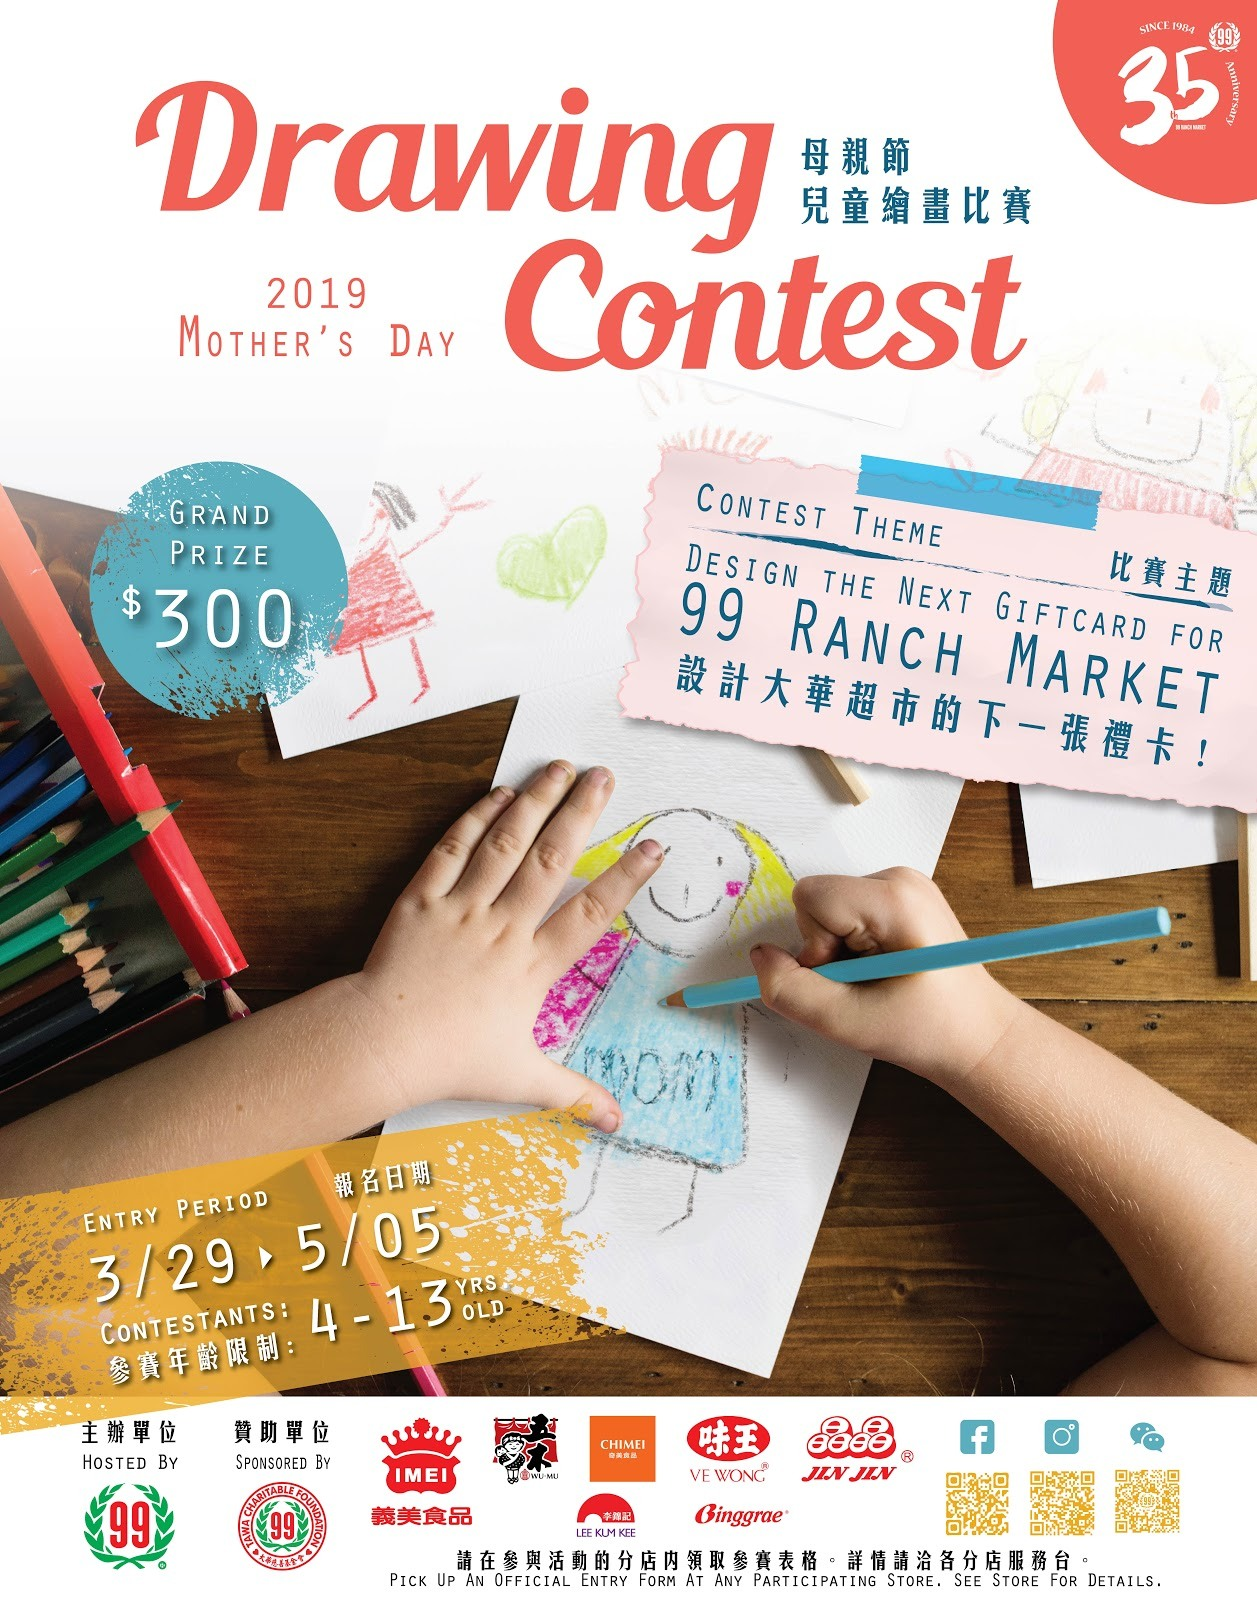 MOTHER'S DAY KIDS' DRAWING CONTEST: ODE TO 99 RANCH MARKET